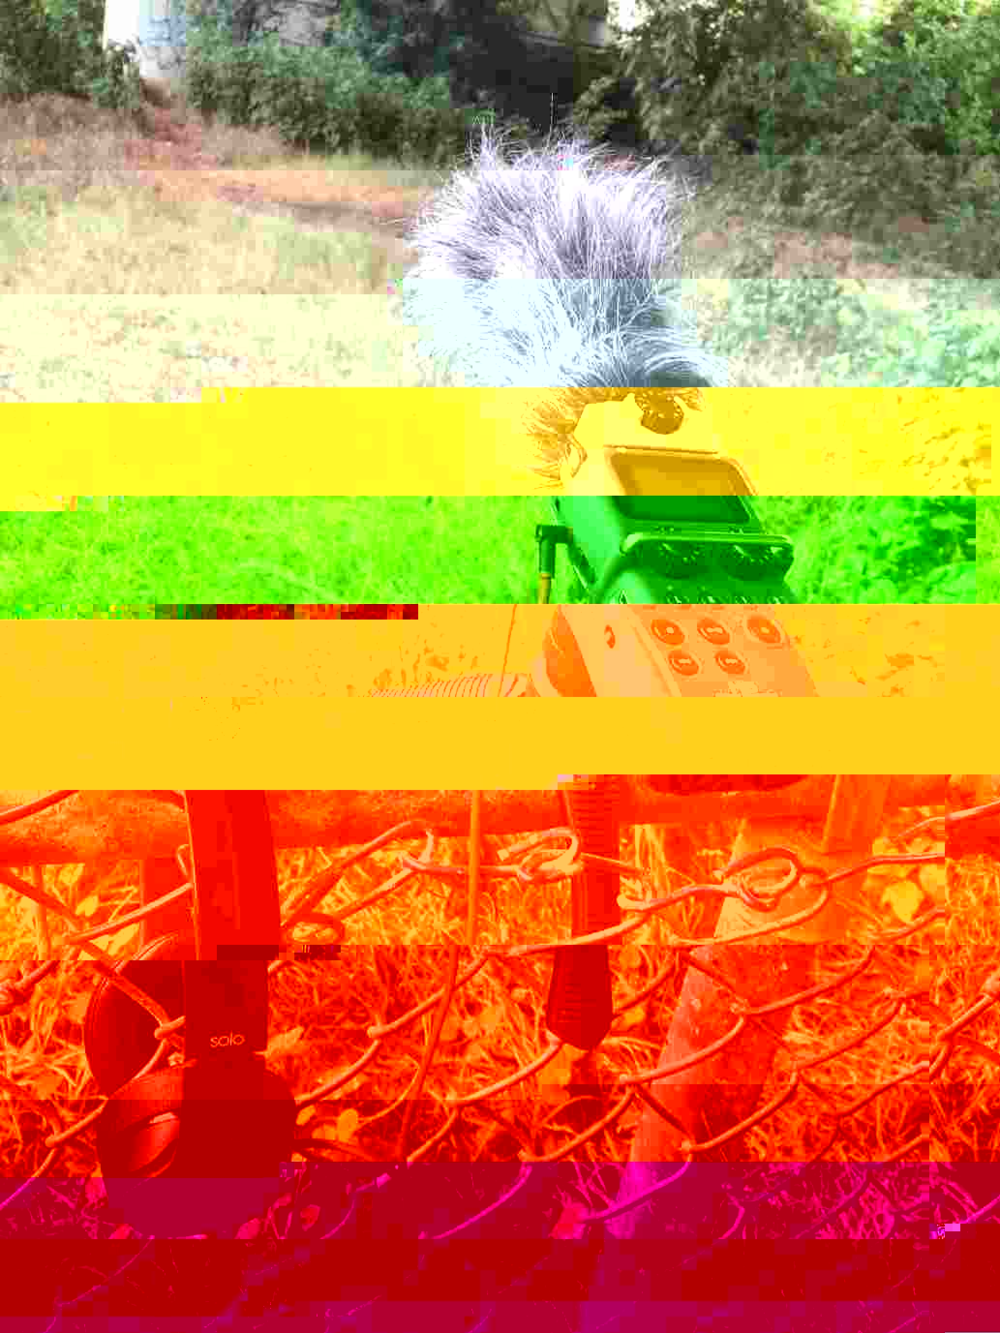 DhwsbY9UcAEmehn-glitched-7-12-2018-3-20-04-PM.png